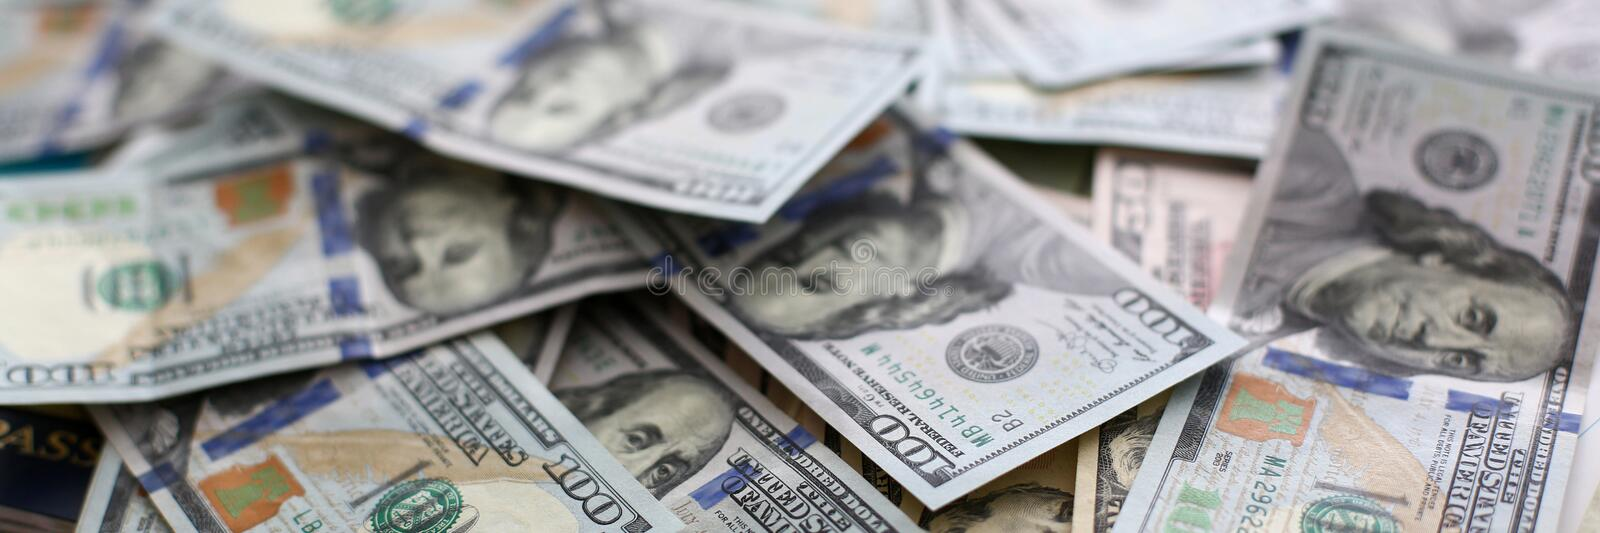 Big pile of US money lying down in random order. Closeup royalty free stock photography